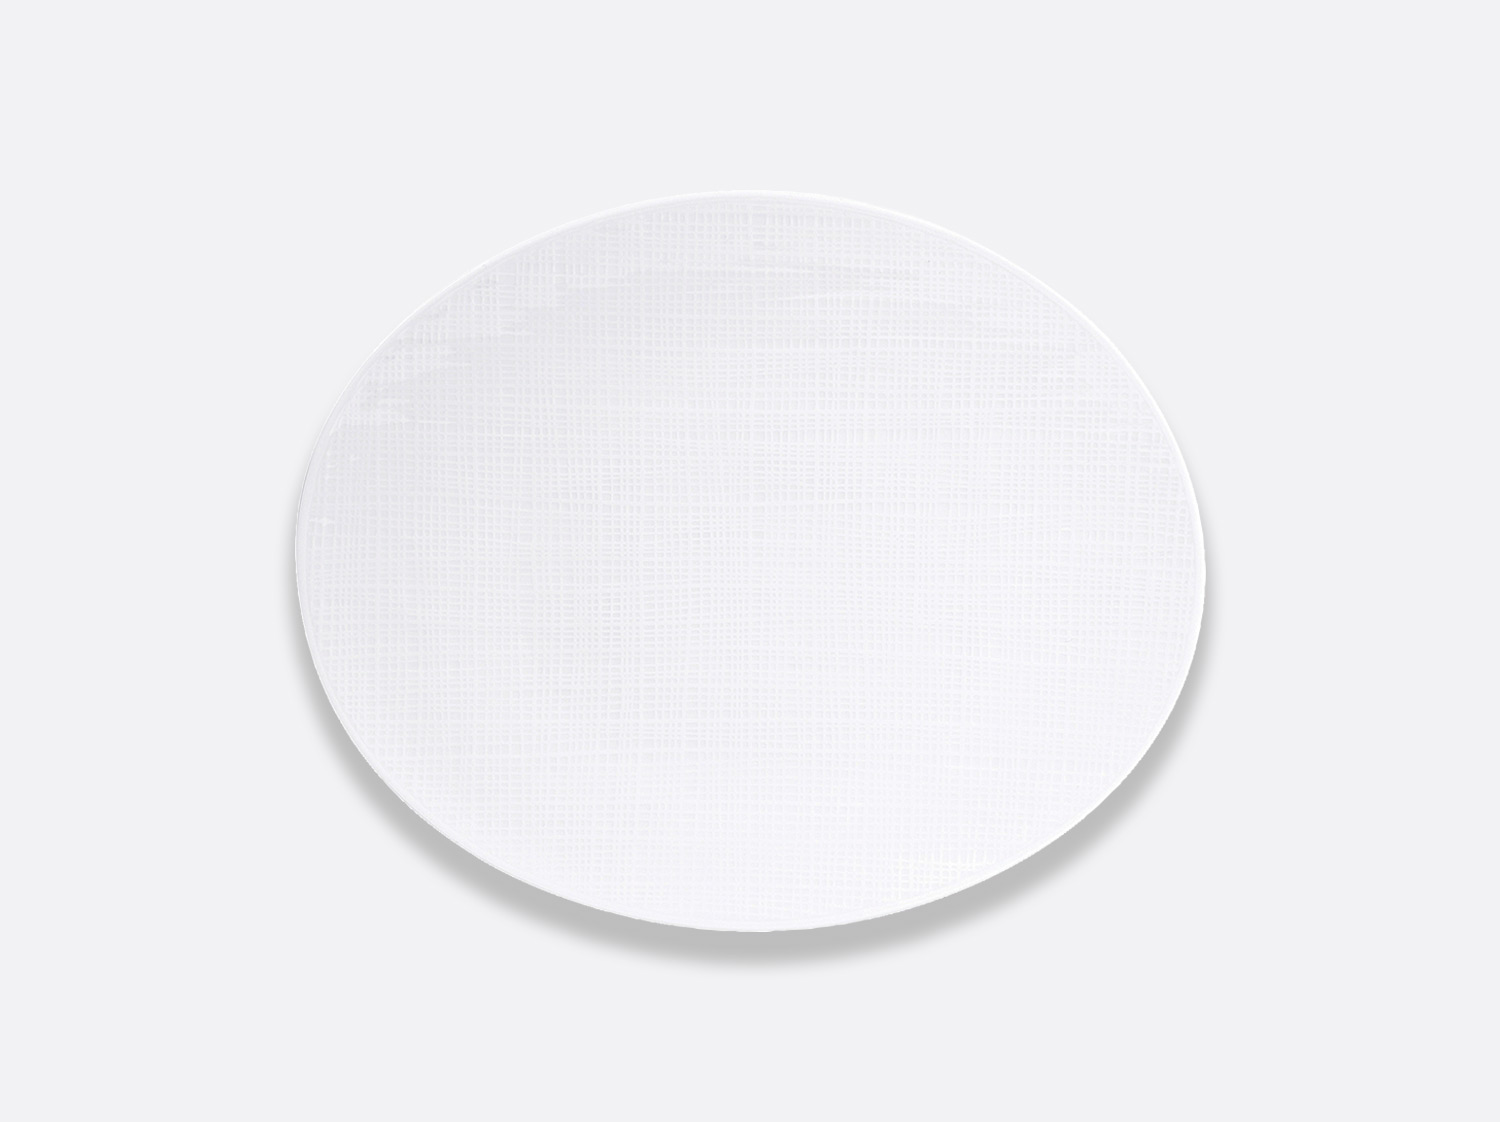 Assiette ovale 32 cm en porcelaine de la collection Organza Bernardaud